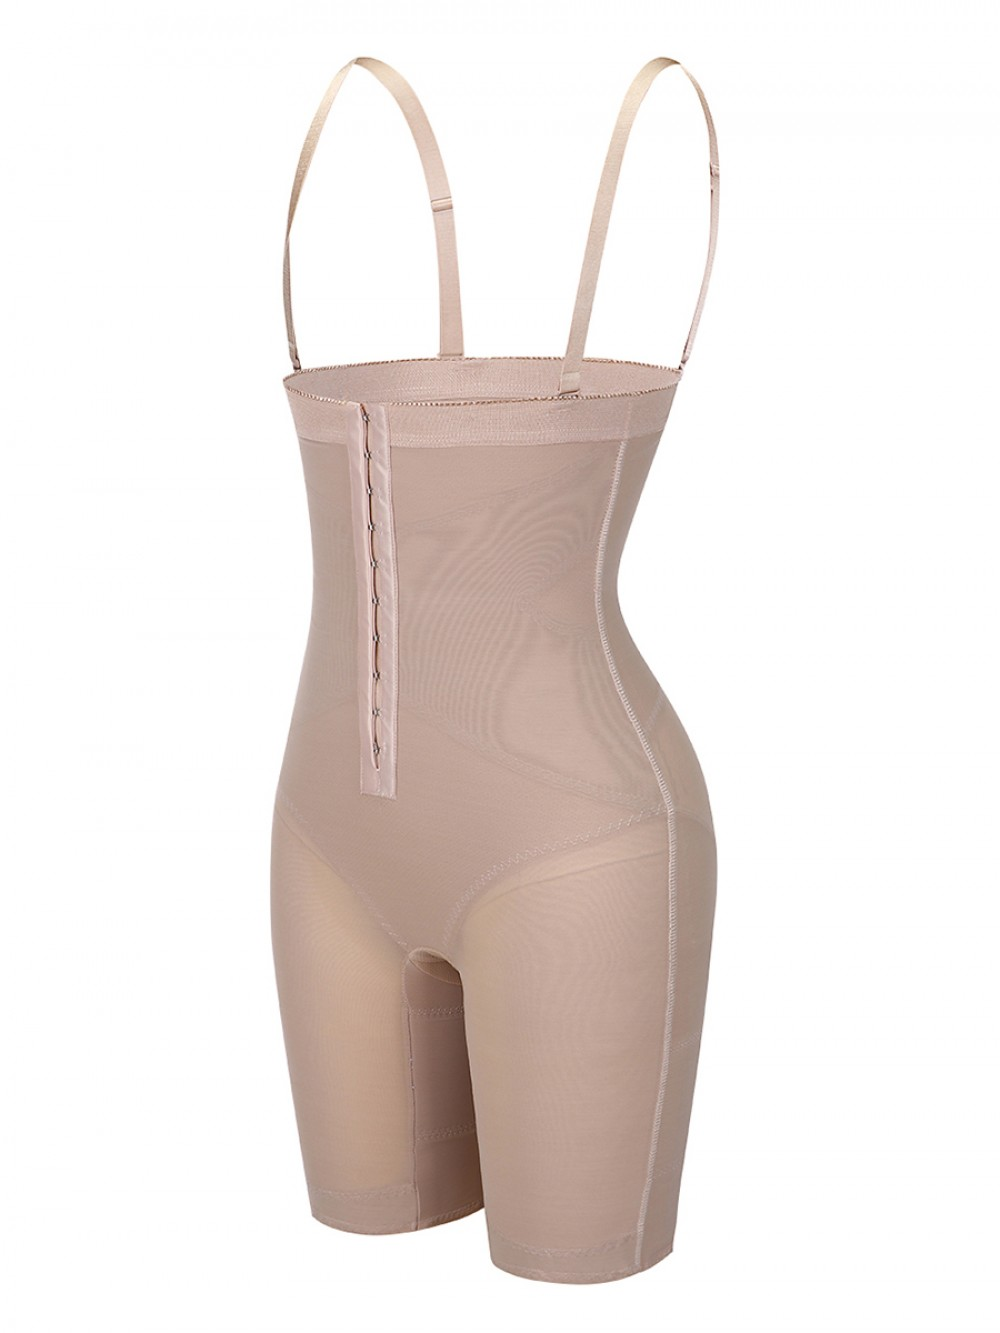 Skin Color Hook Detachable Straps Full Body Shaper Moderate Control